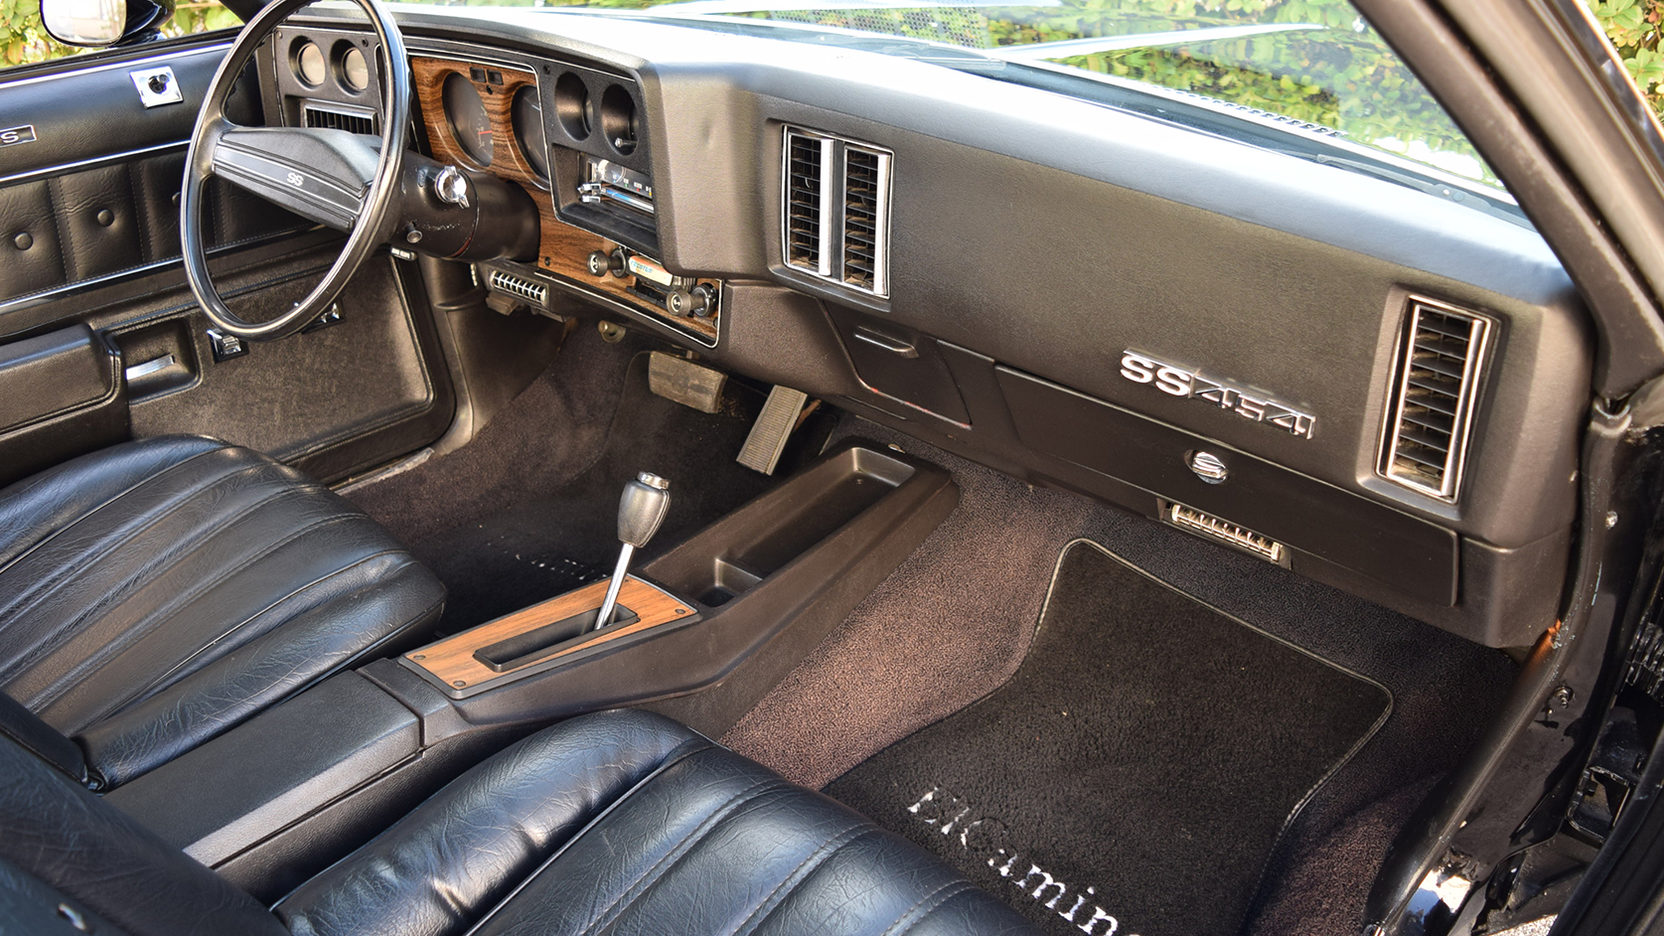 medium resolution of 1974 chevrolet el camino ss 9 full screen